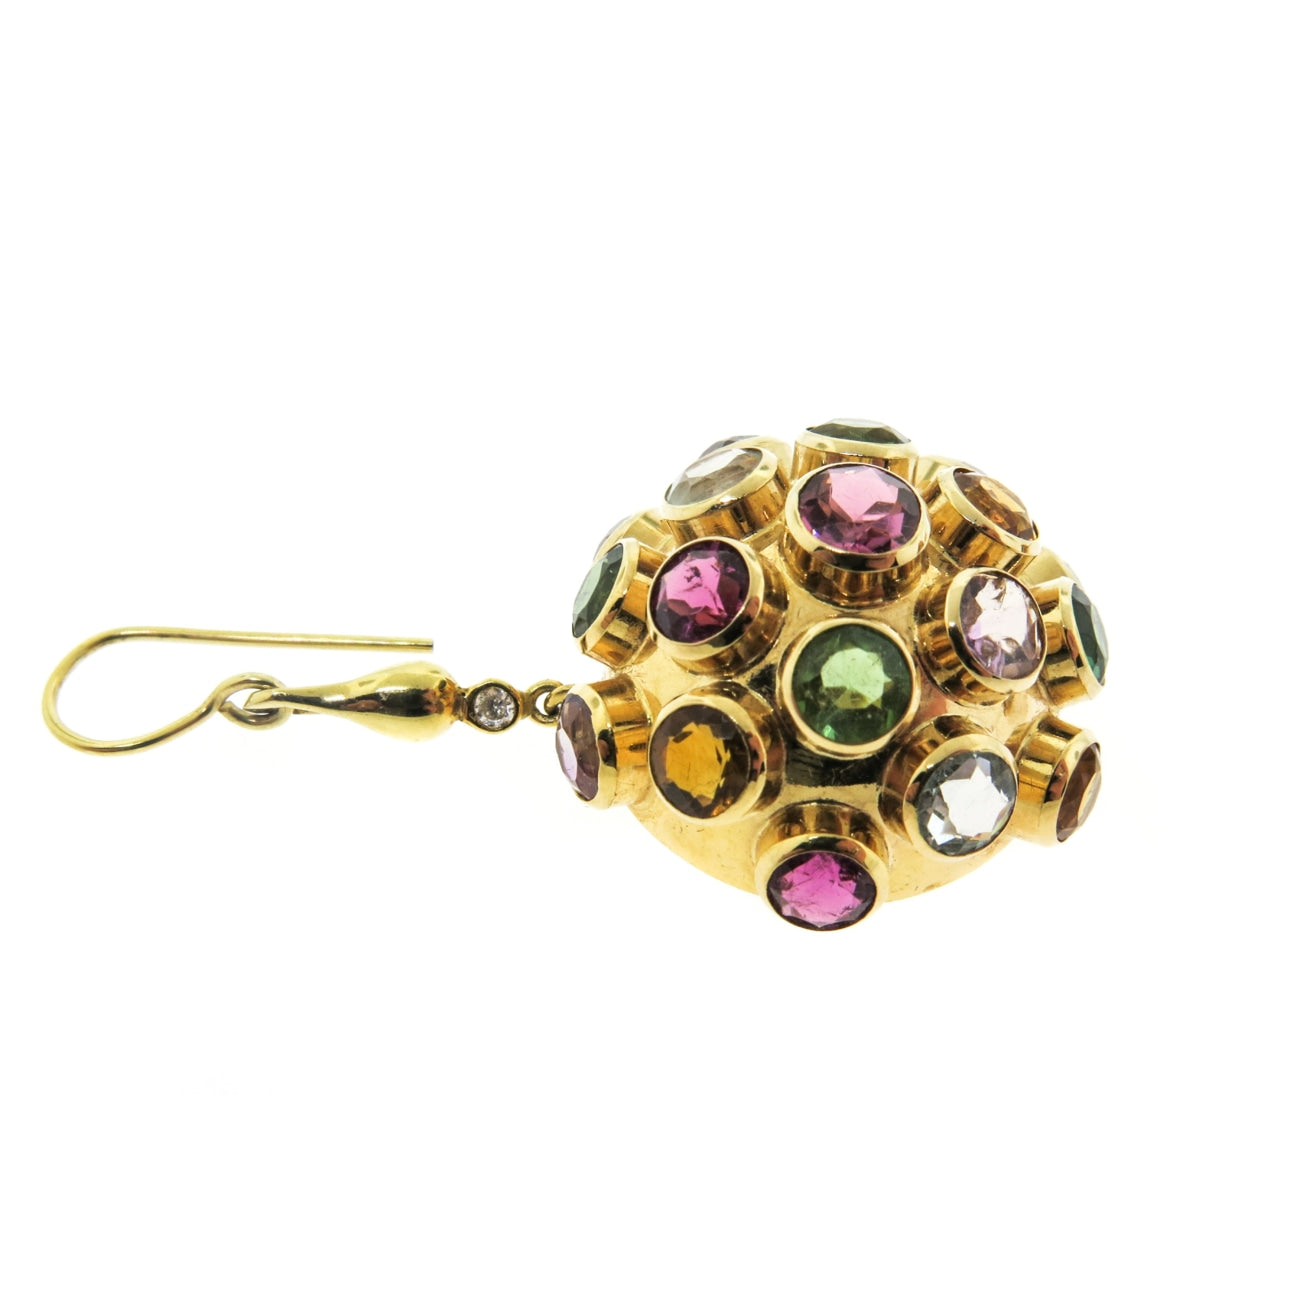 Estate Jewelry Estate Jewelry - Multicolor Gemstones Drop Earrings | Manfredi Jewels